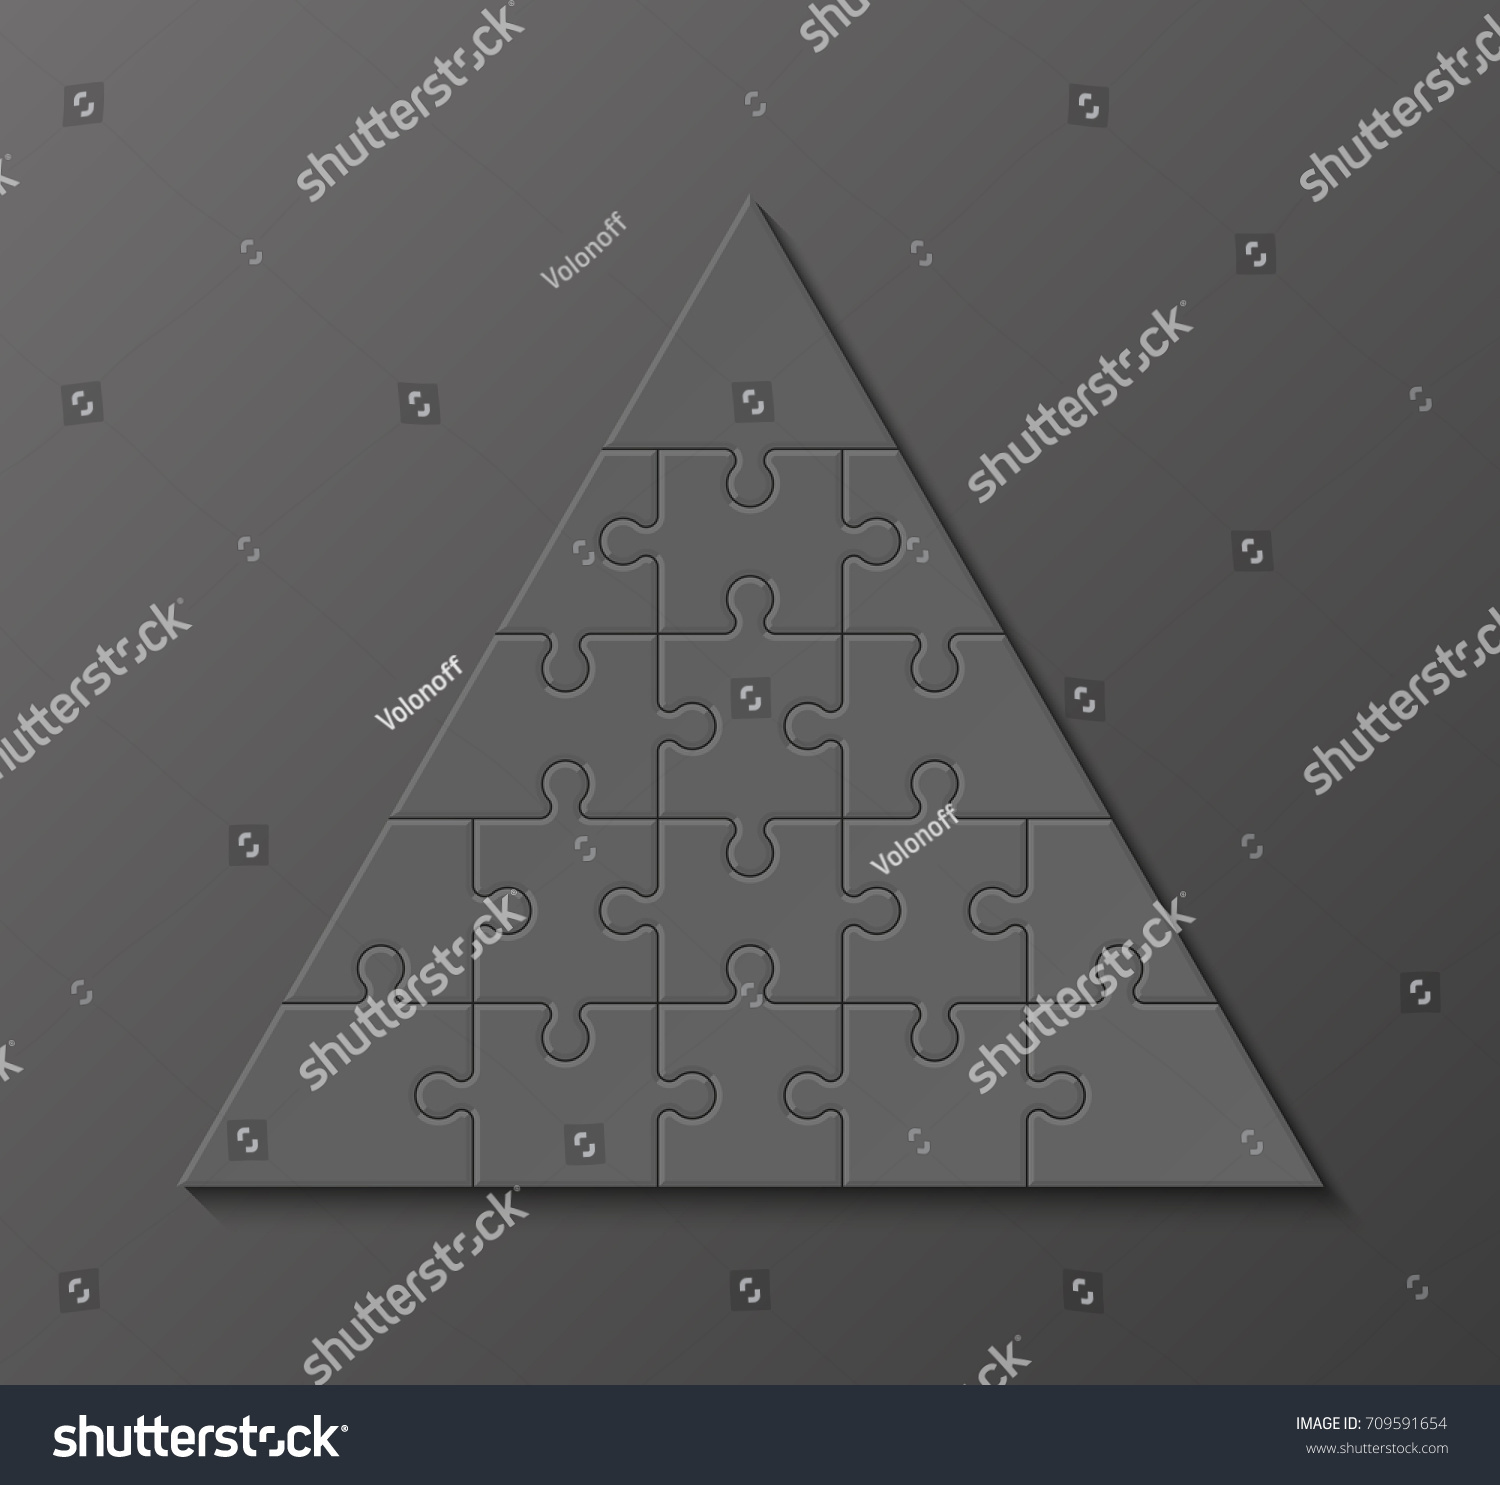 Five Levels Pyramid Puzzle Presentation Infographic Stock Vector ...